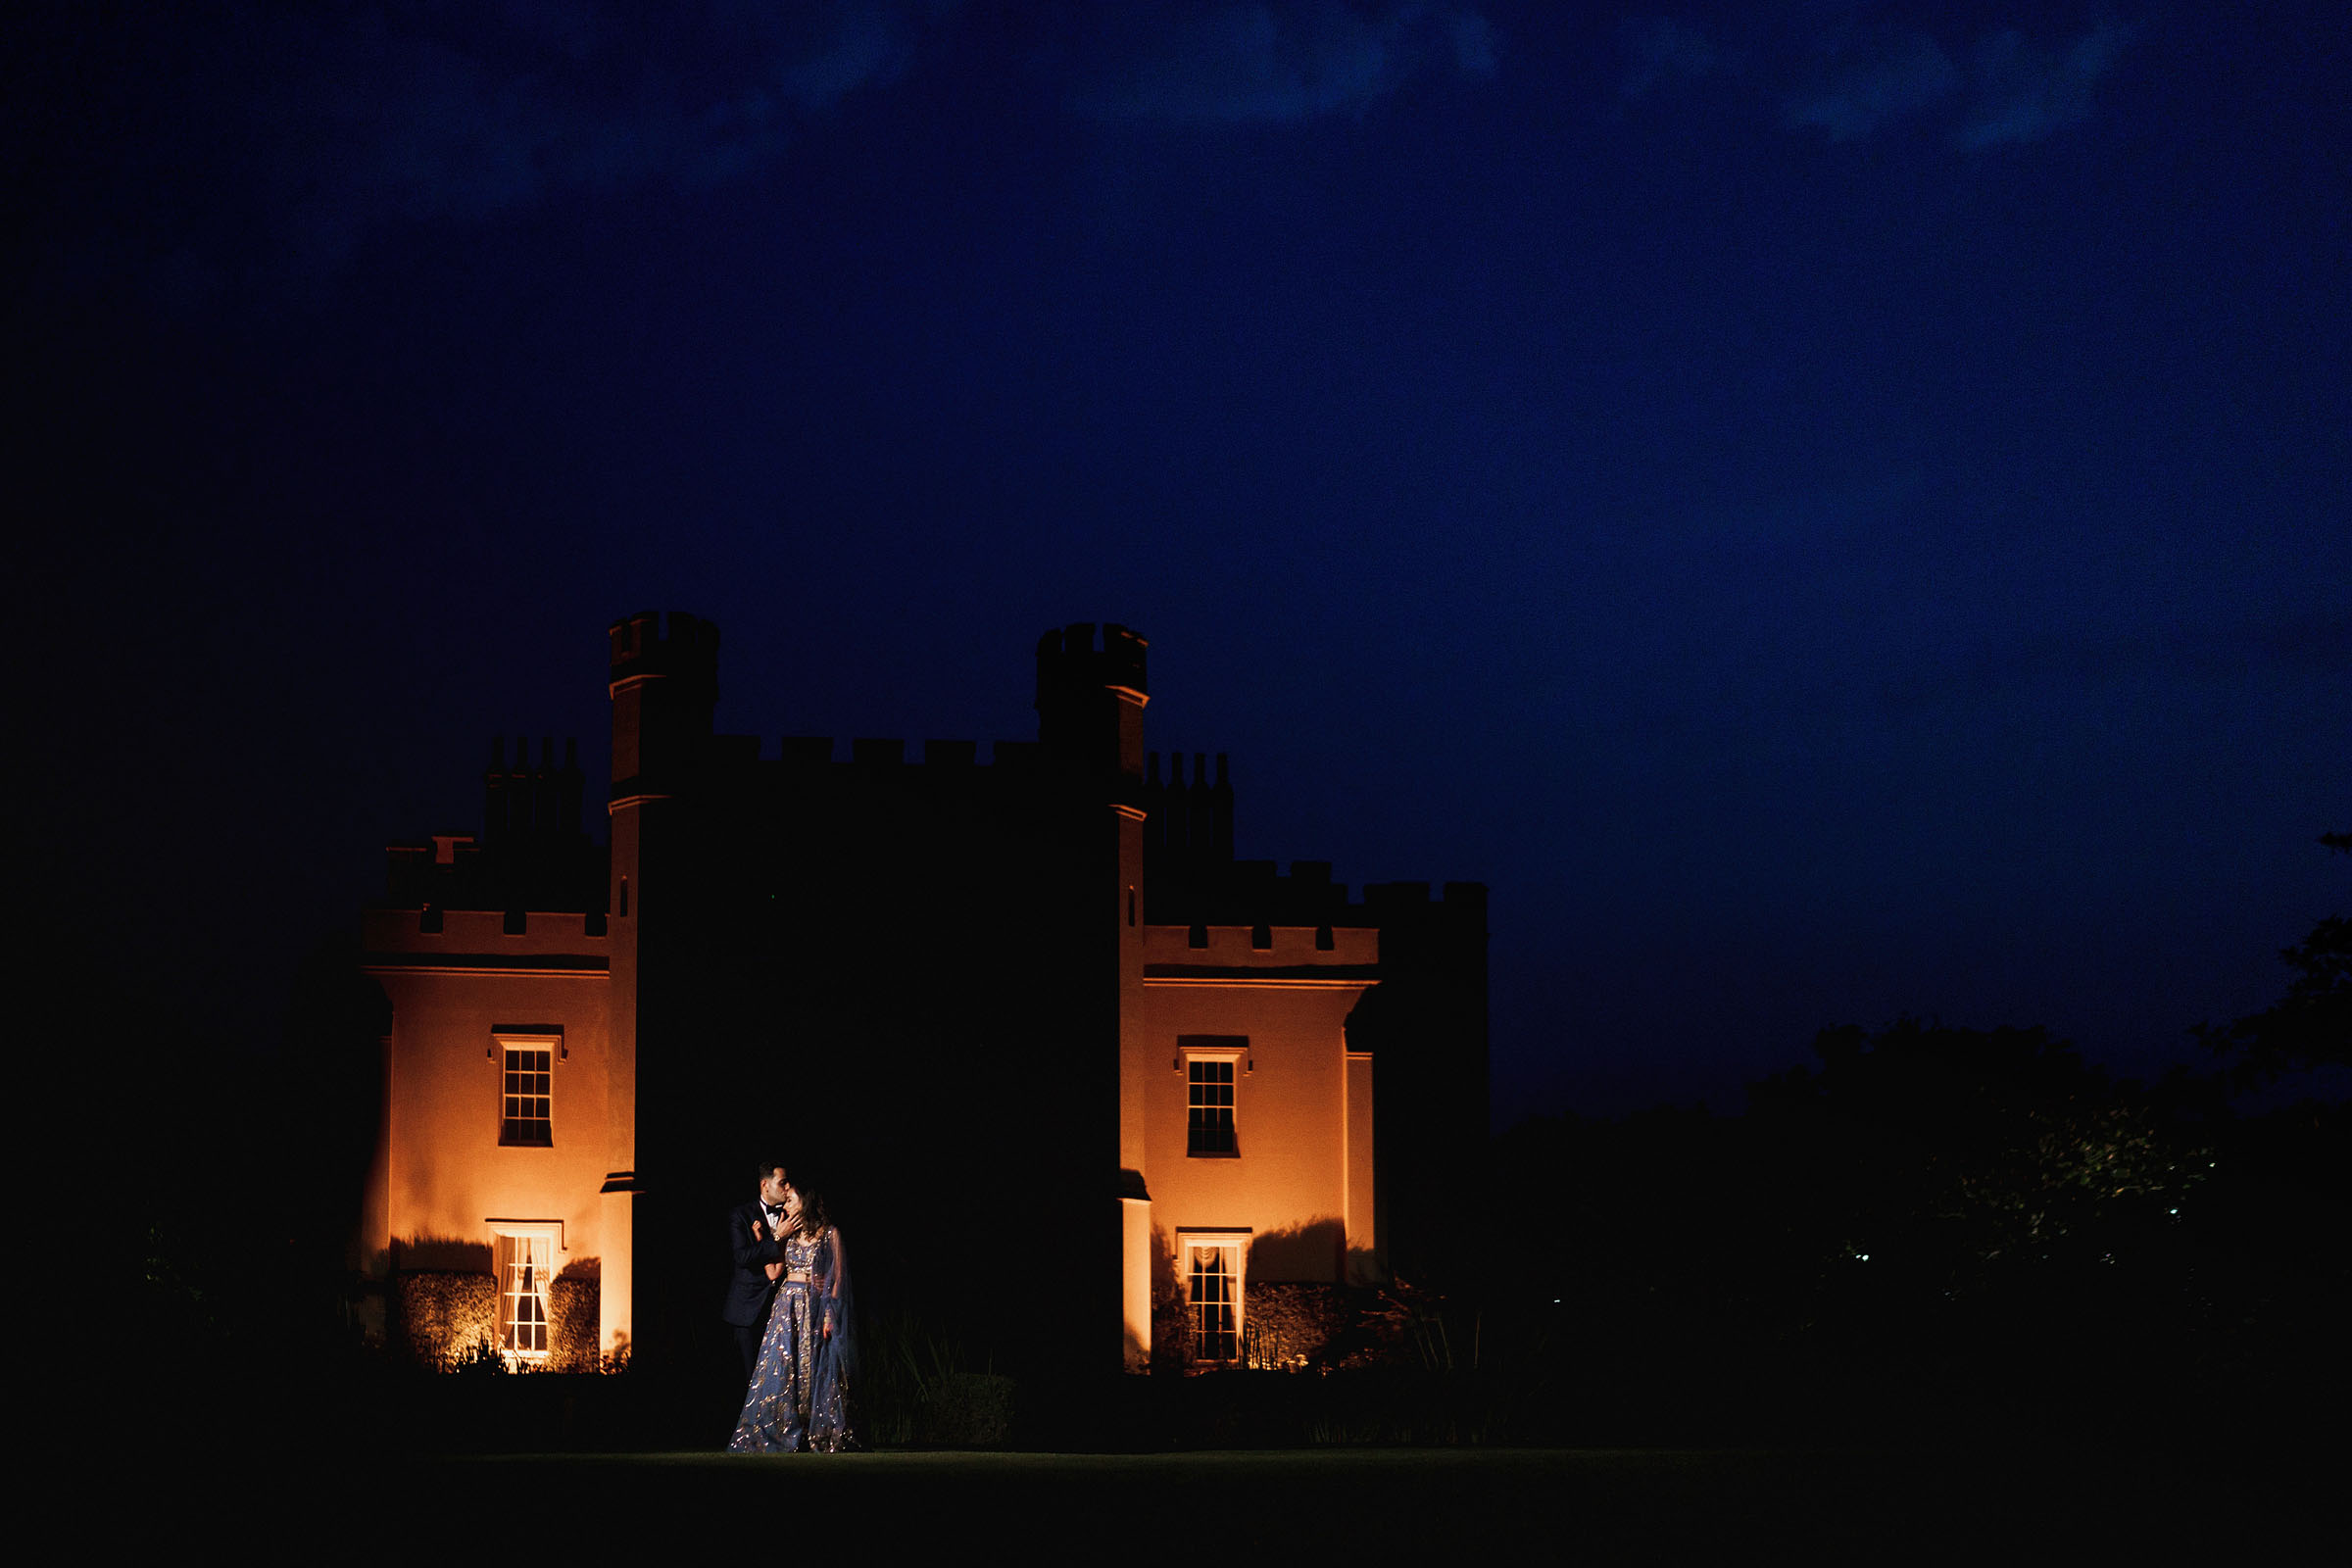 Nighttime couple against historic building - Photo by F5 Photography